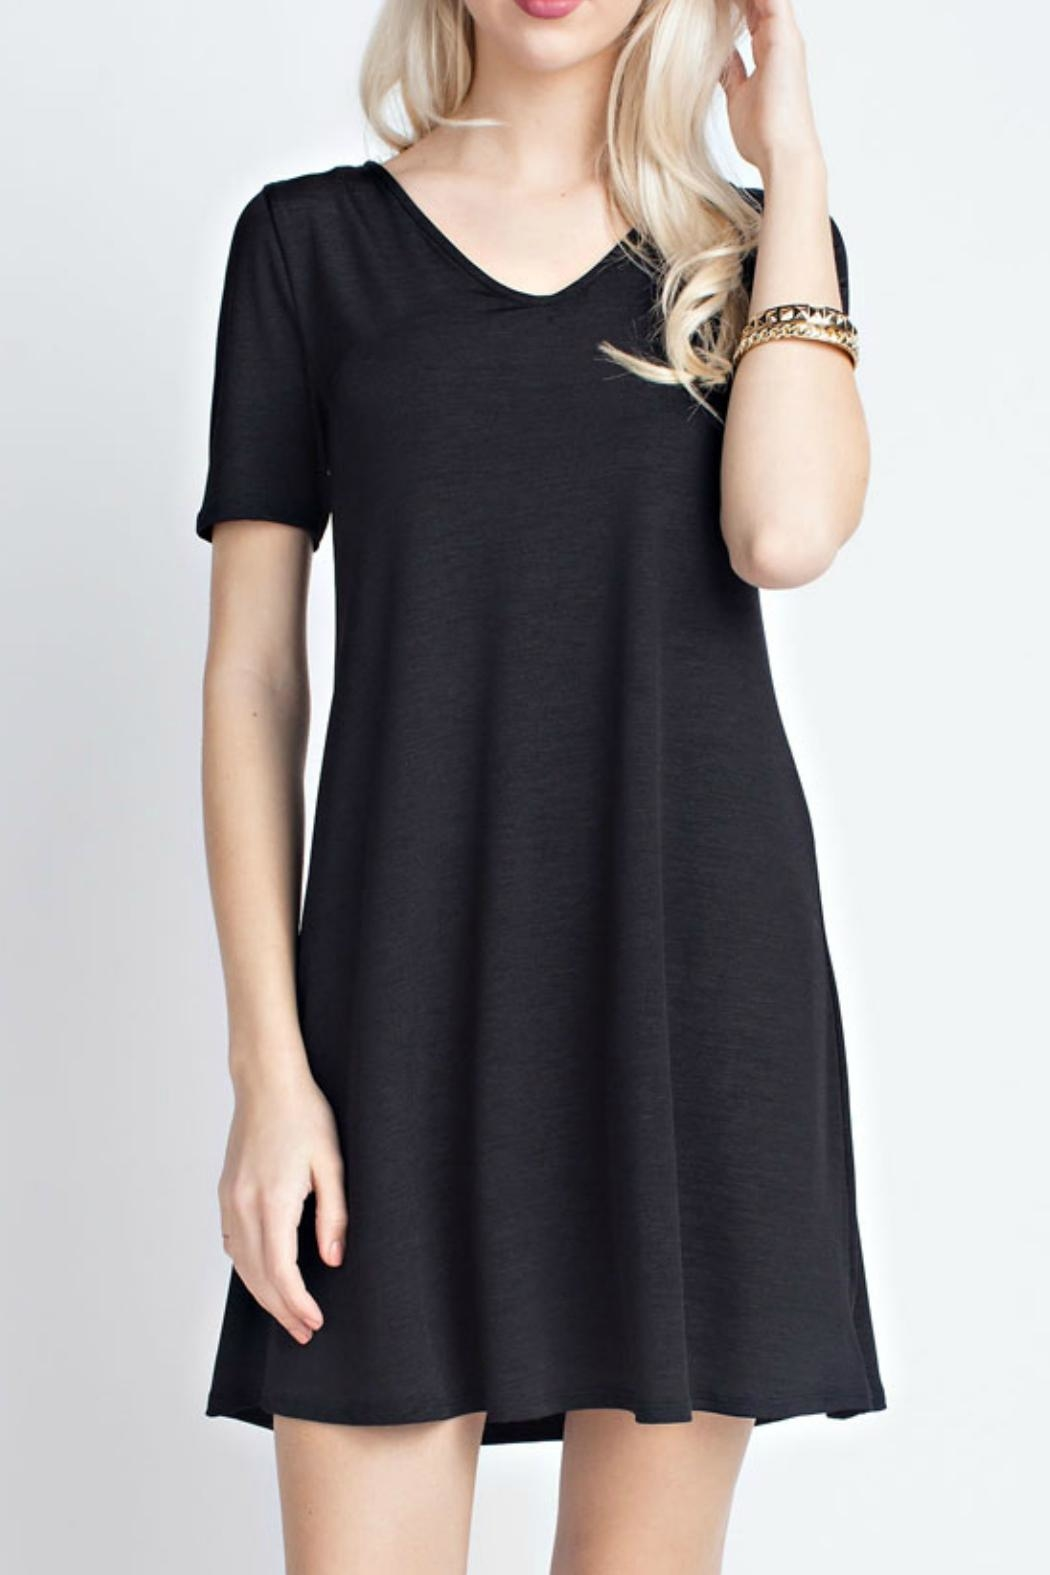 12pm by Mon Ami Black Trendy Dress - Front Cropped Image